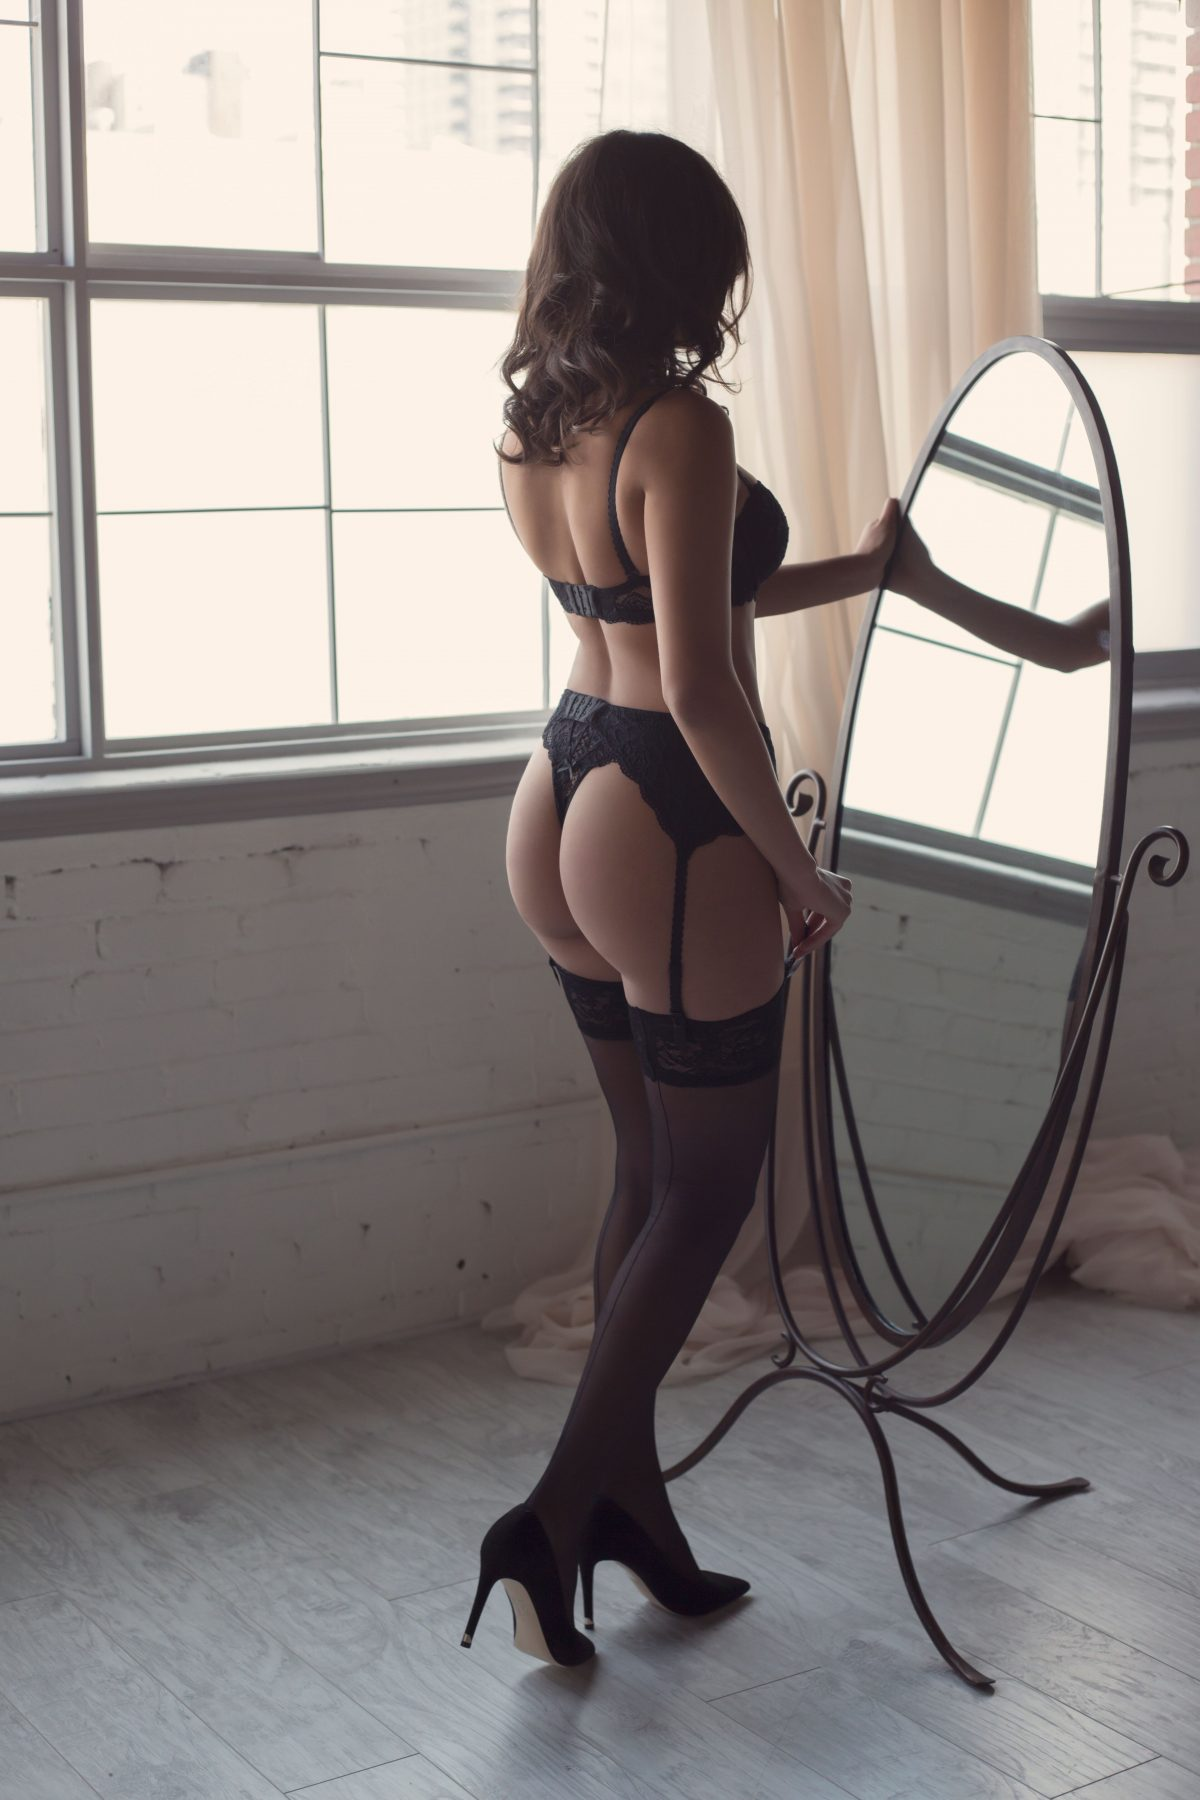 Toronto escorts companion upscale Miranda Interests Duo Couple-friendly Non-smoking Age Young Figure Slender Curvy Breasts Natural Hair Brunette Ethnicity European Exotic Tattoos None